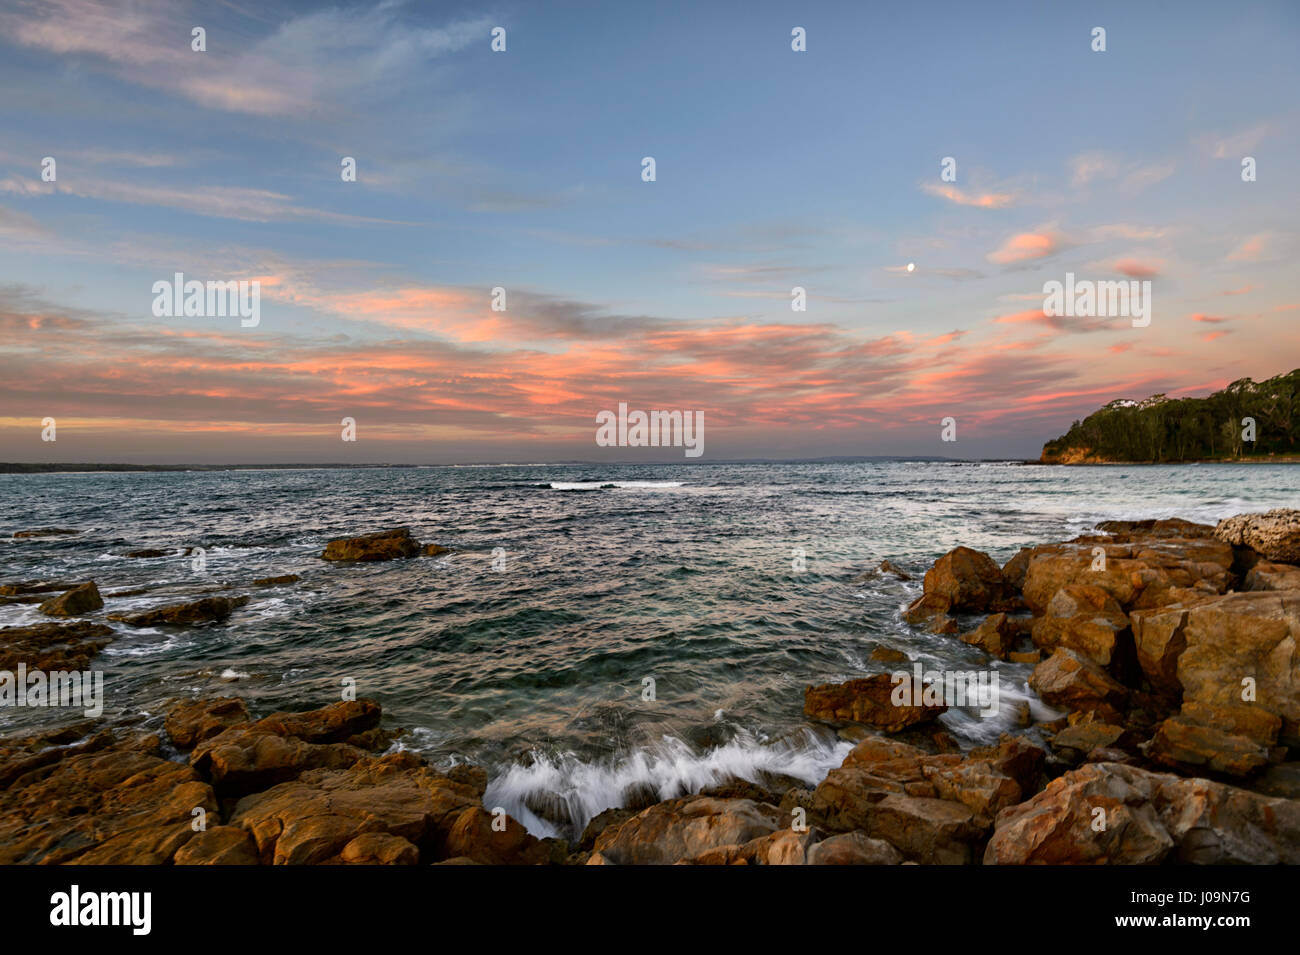 Sunset over lavandaia's Beach, Bendalong Beach, Shoalhaven, South Coast, Nuovo Galles del Sud, NSW, Australia Foto Stock